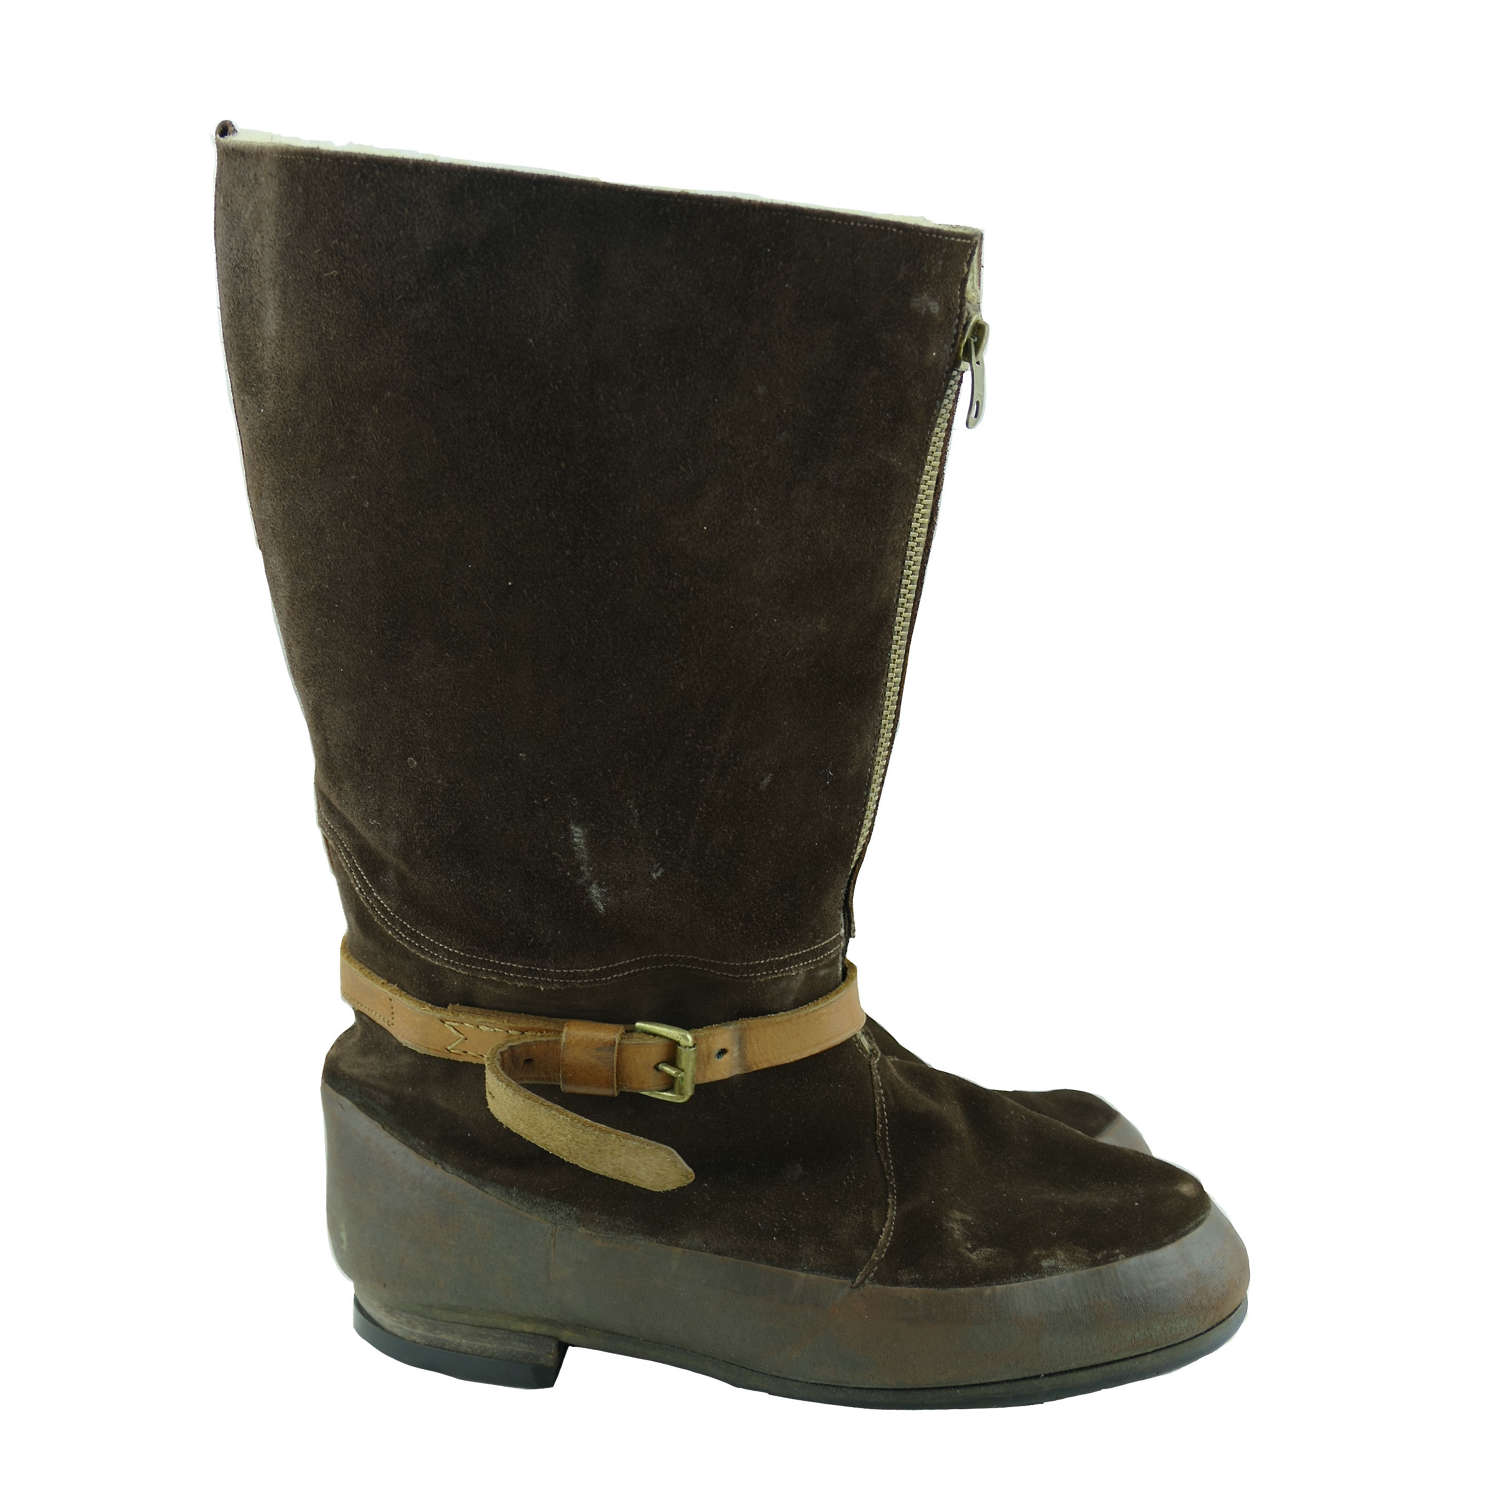 RAF 1941 pattern flying boots, S7